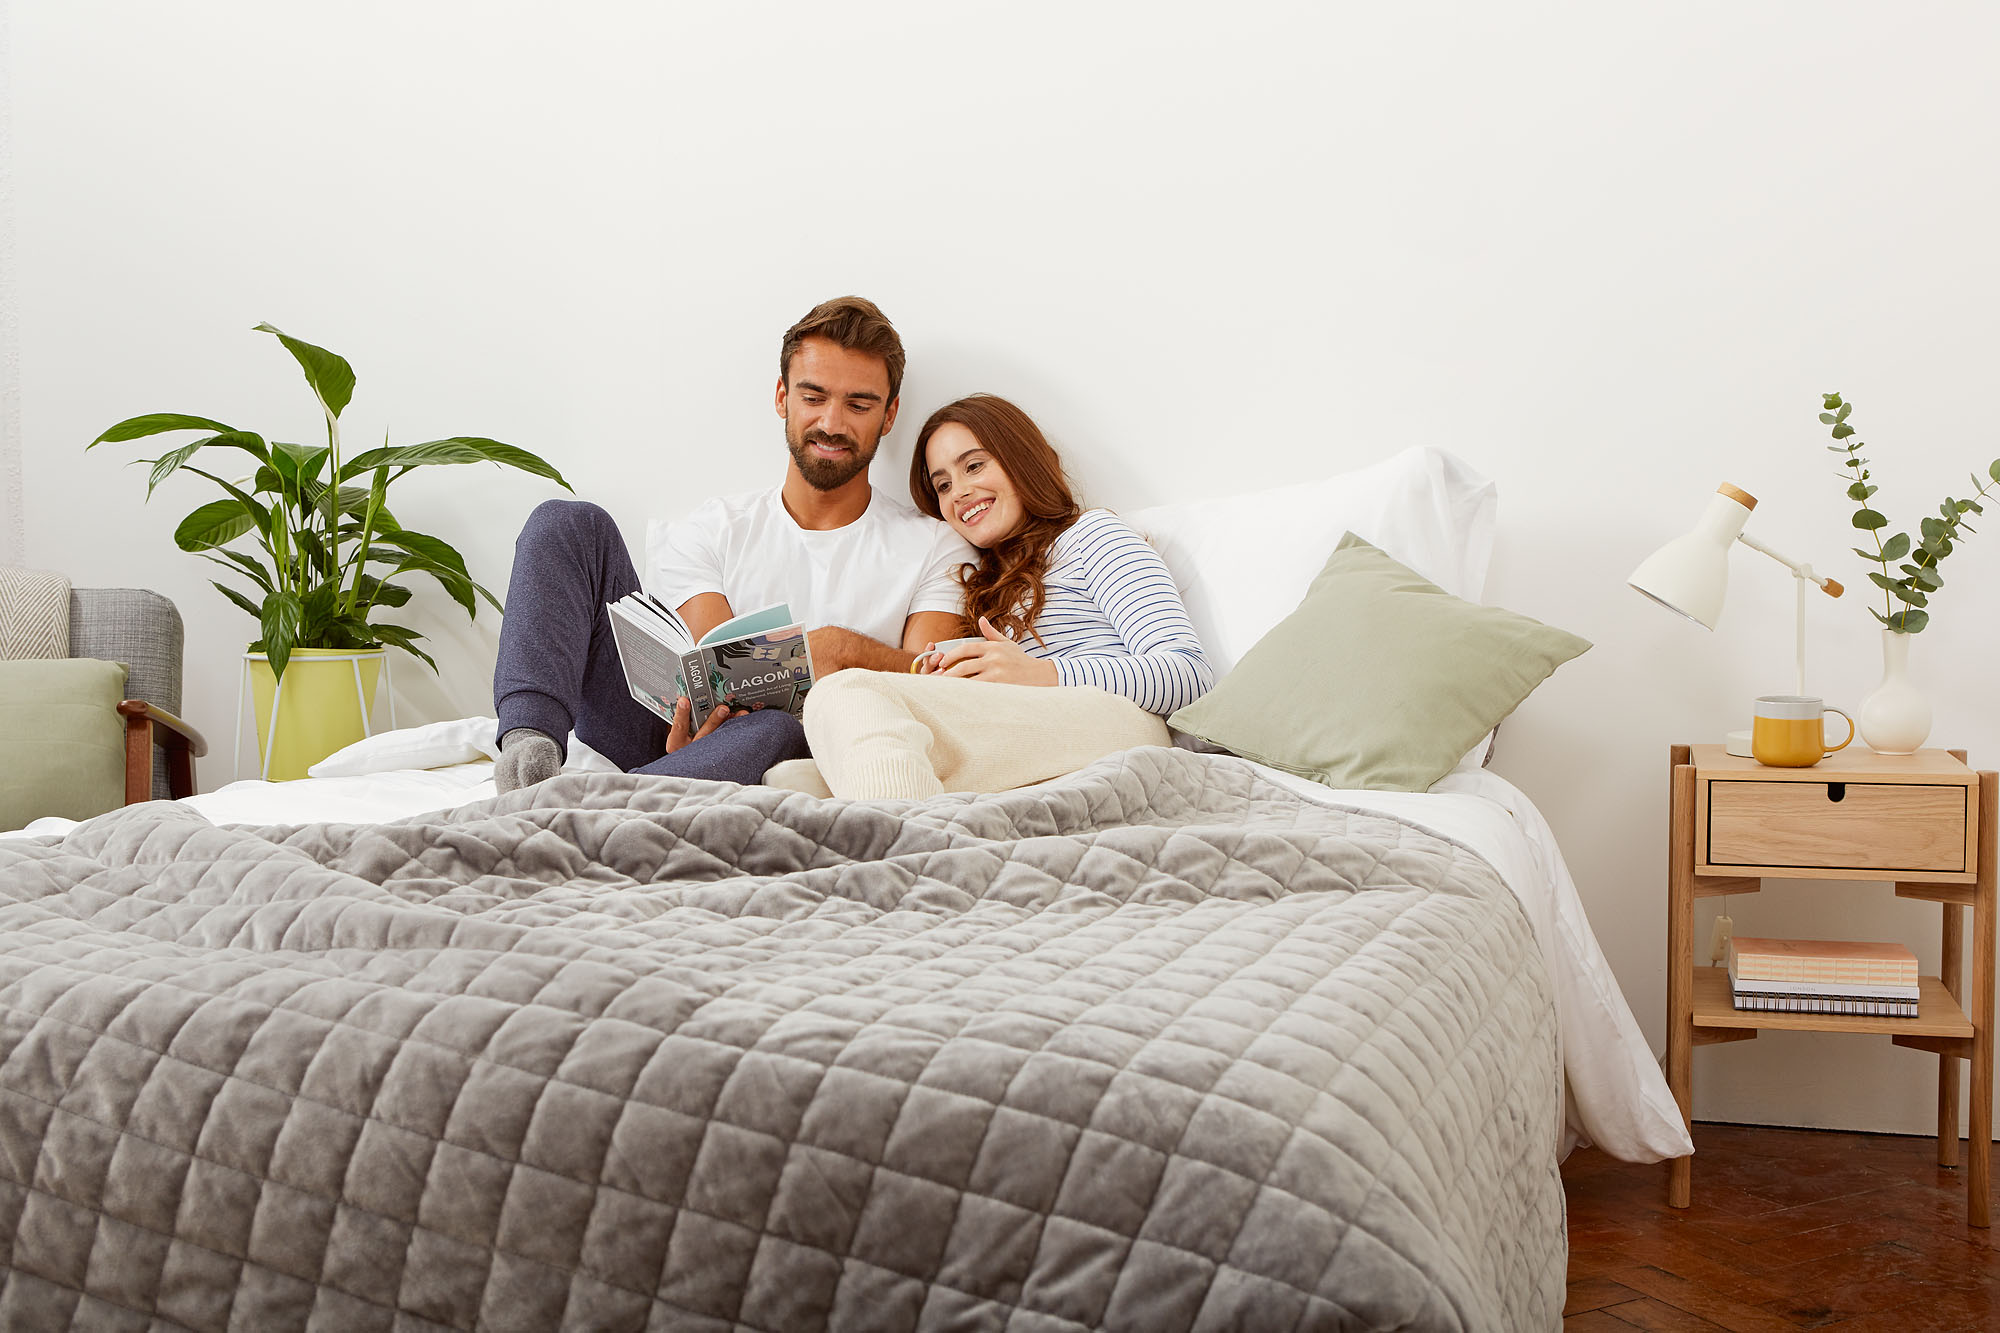 How to get a decent night's sleep with a Mela weighted blanket